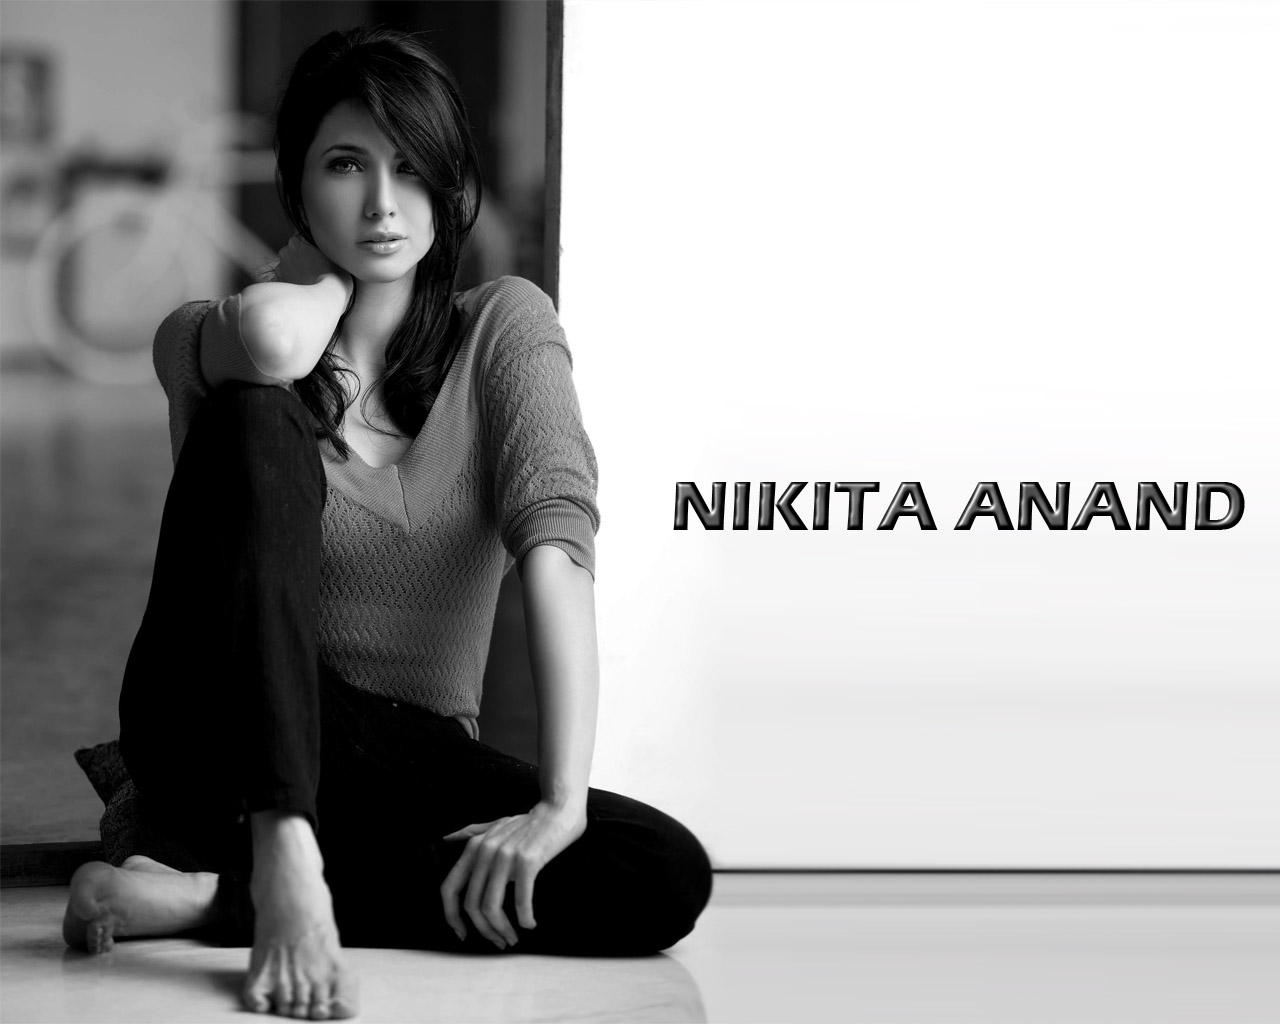 nikita anand height